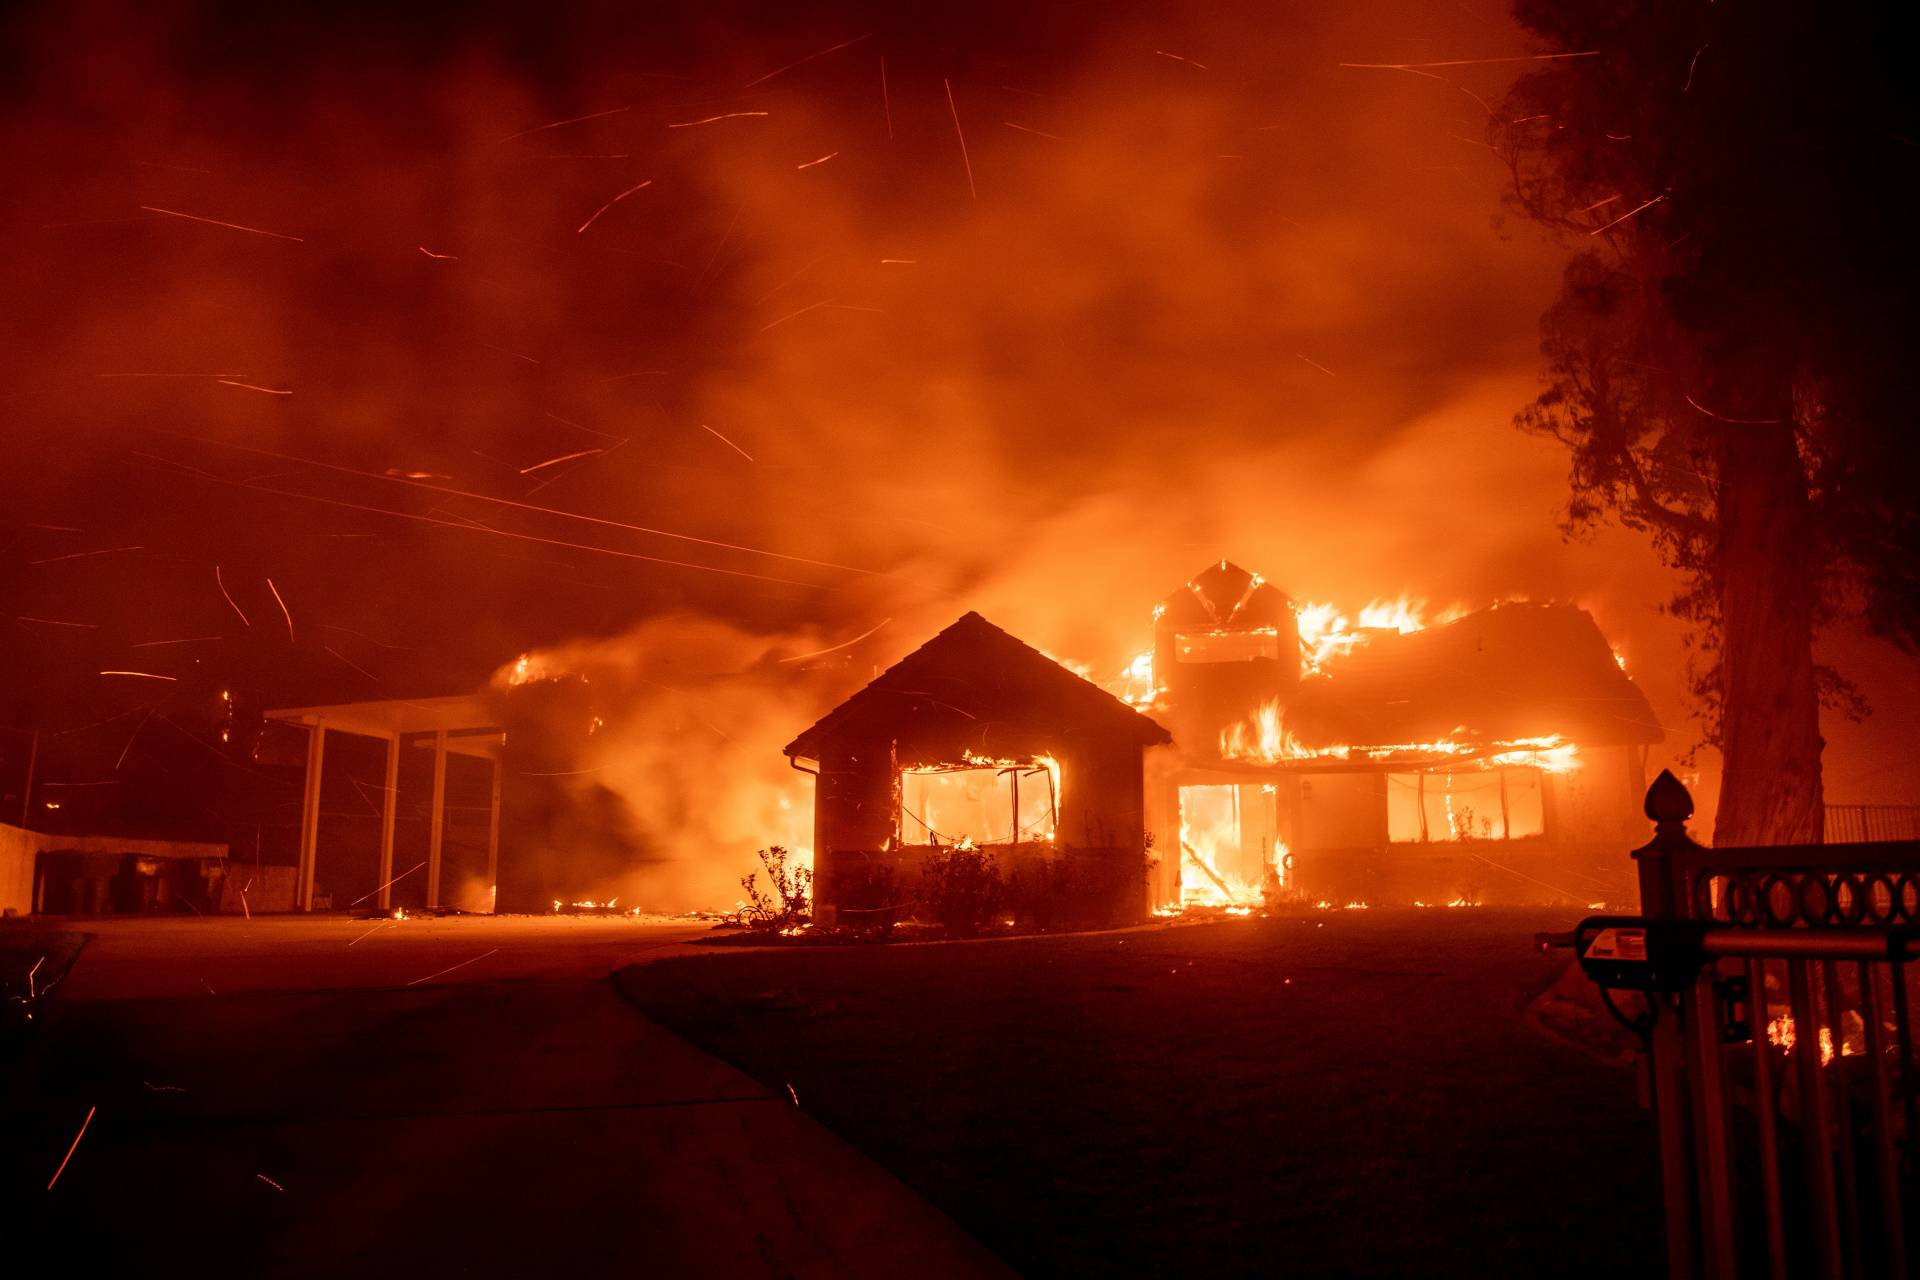 State Bans Insurers From Dropping Homeowner Policies in Areas Hit by Wildfires